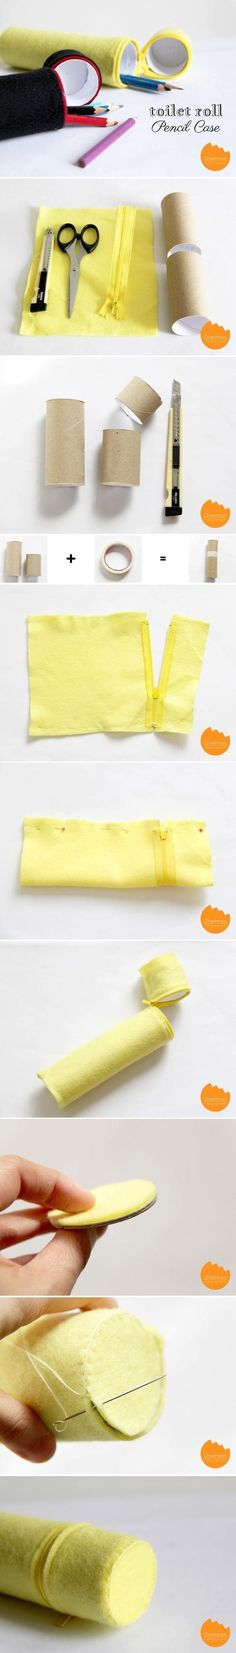 7. Toilet Paper Roll Pencil Case | 10 DIY Pencil Cases That Make The End Of Summer A Little Less Sad